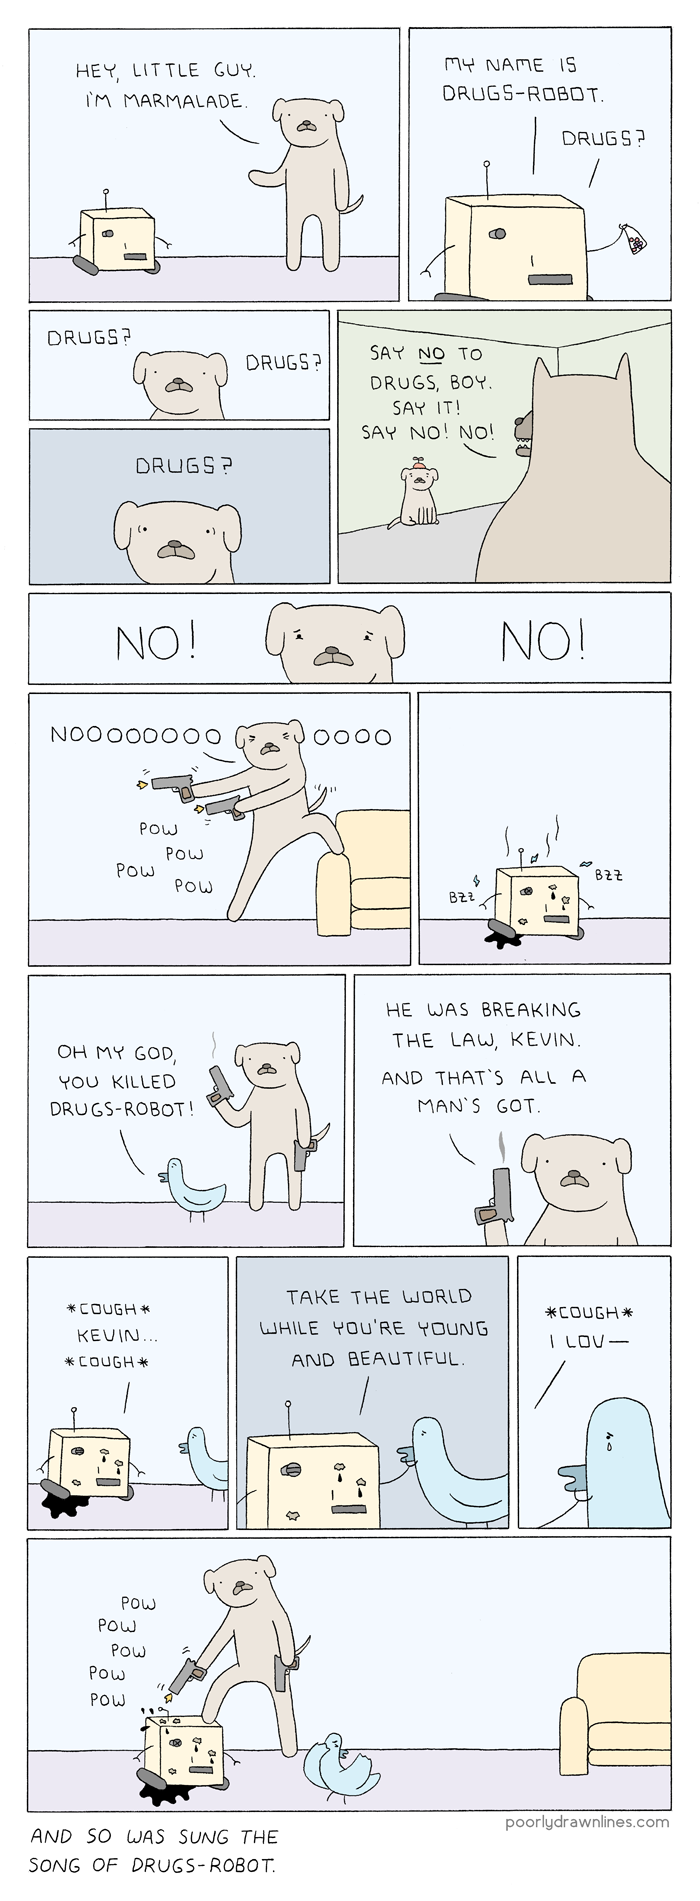 Poorly Drawn Lines -  PoorlyDrawnLines.com